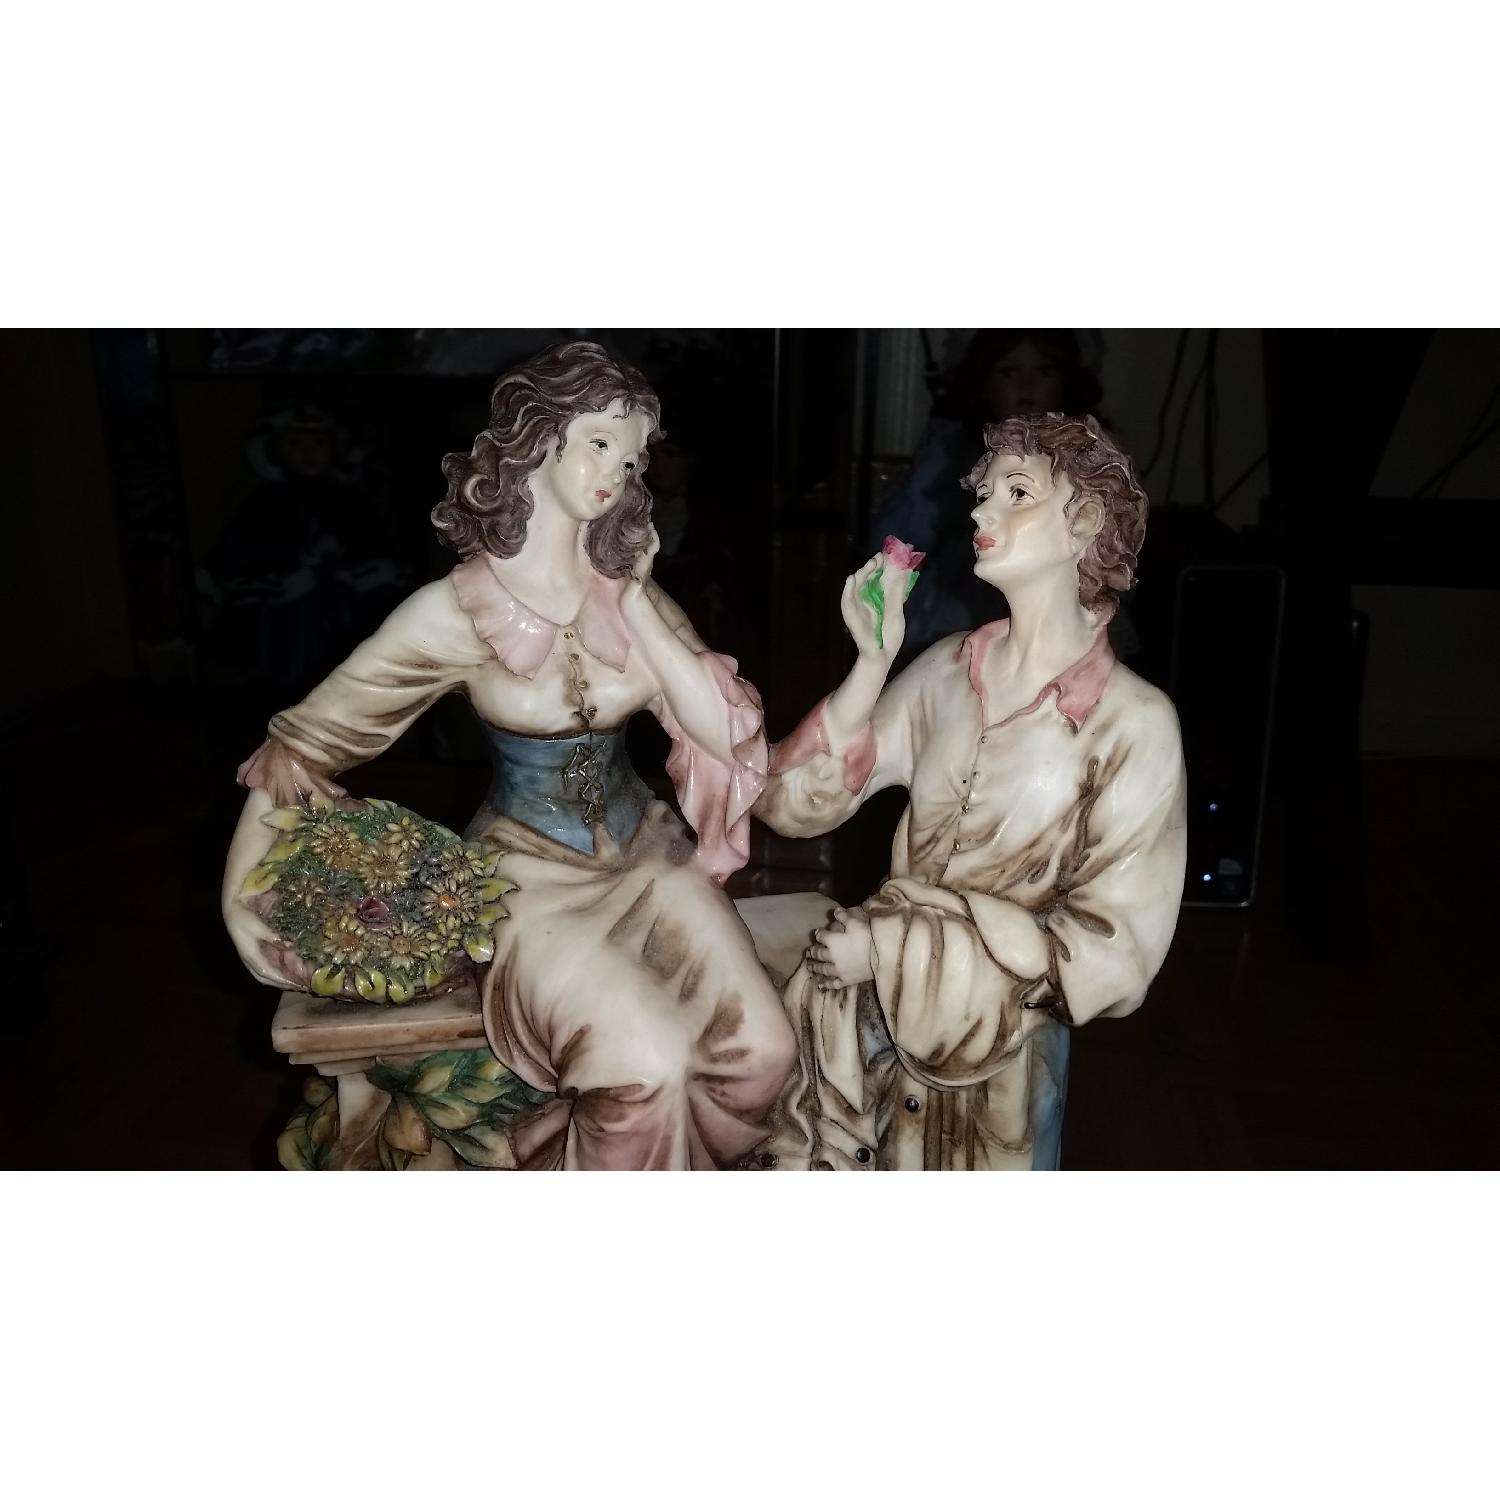 Vintage Serie Valentino by Miriam Couple in Love Sculpture Figurine - image-2